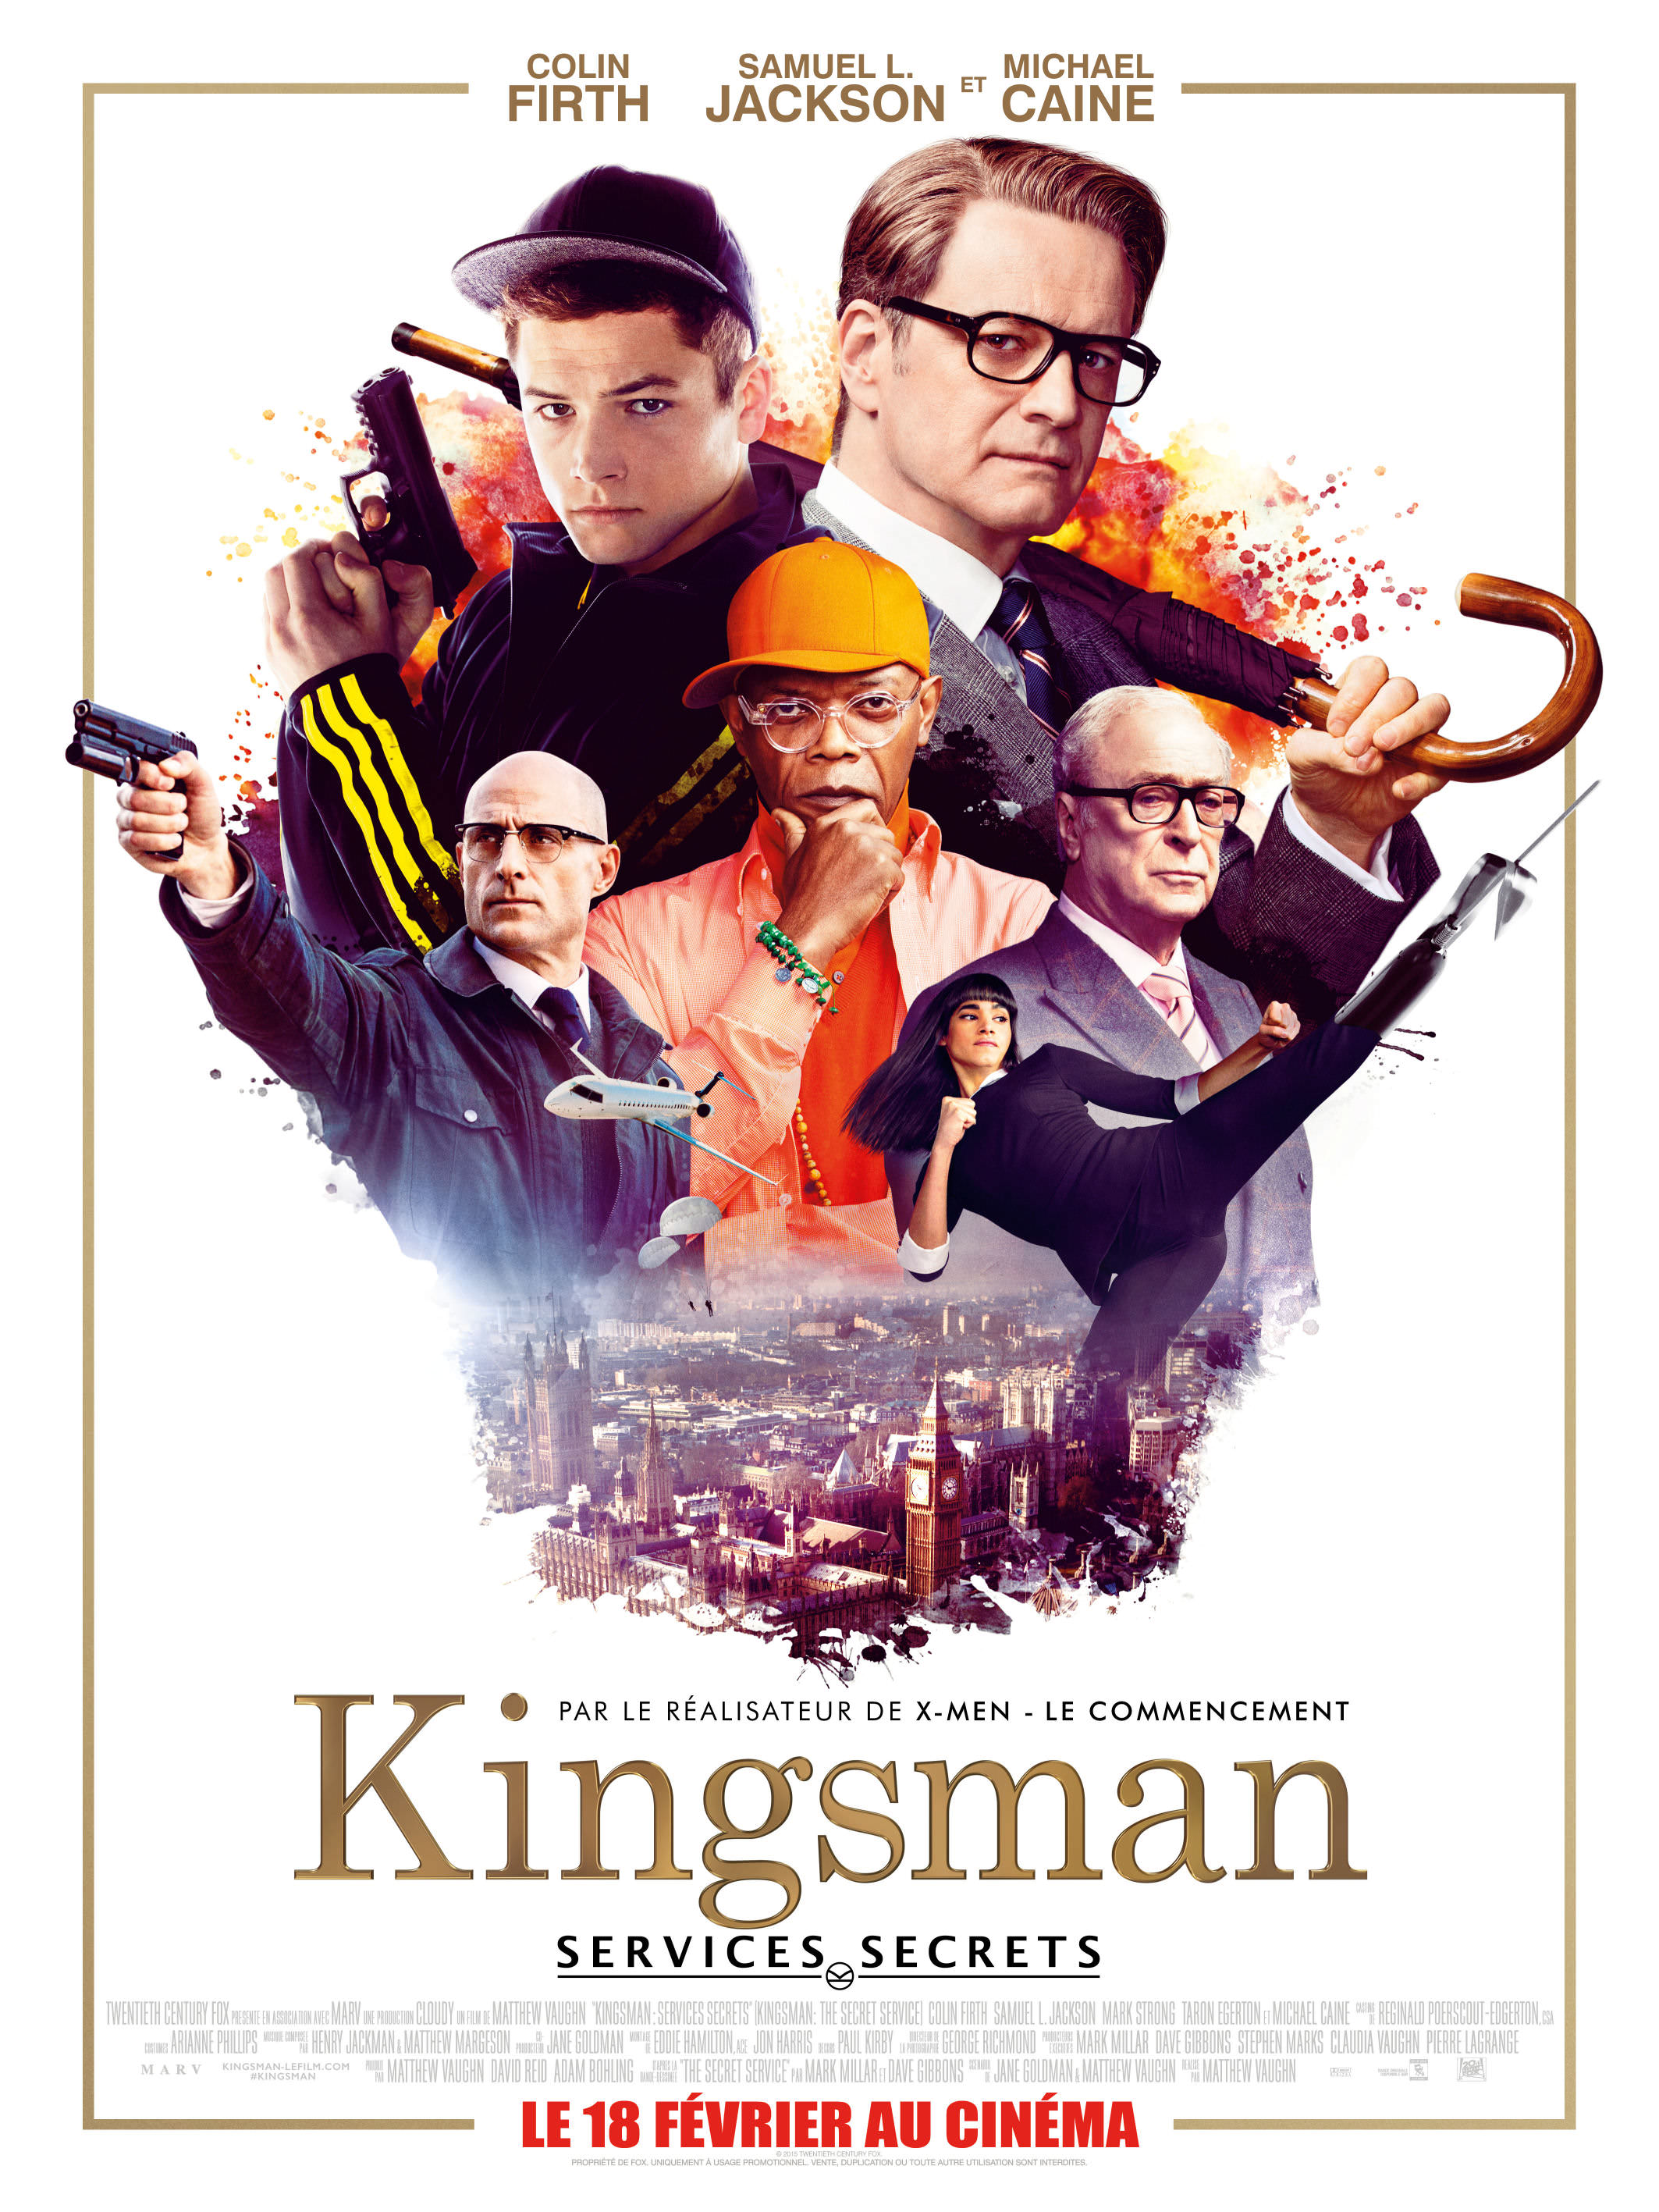 Kingsman services secrets vaughn